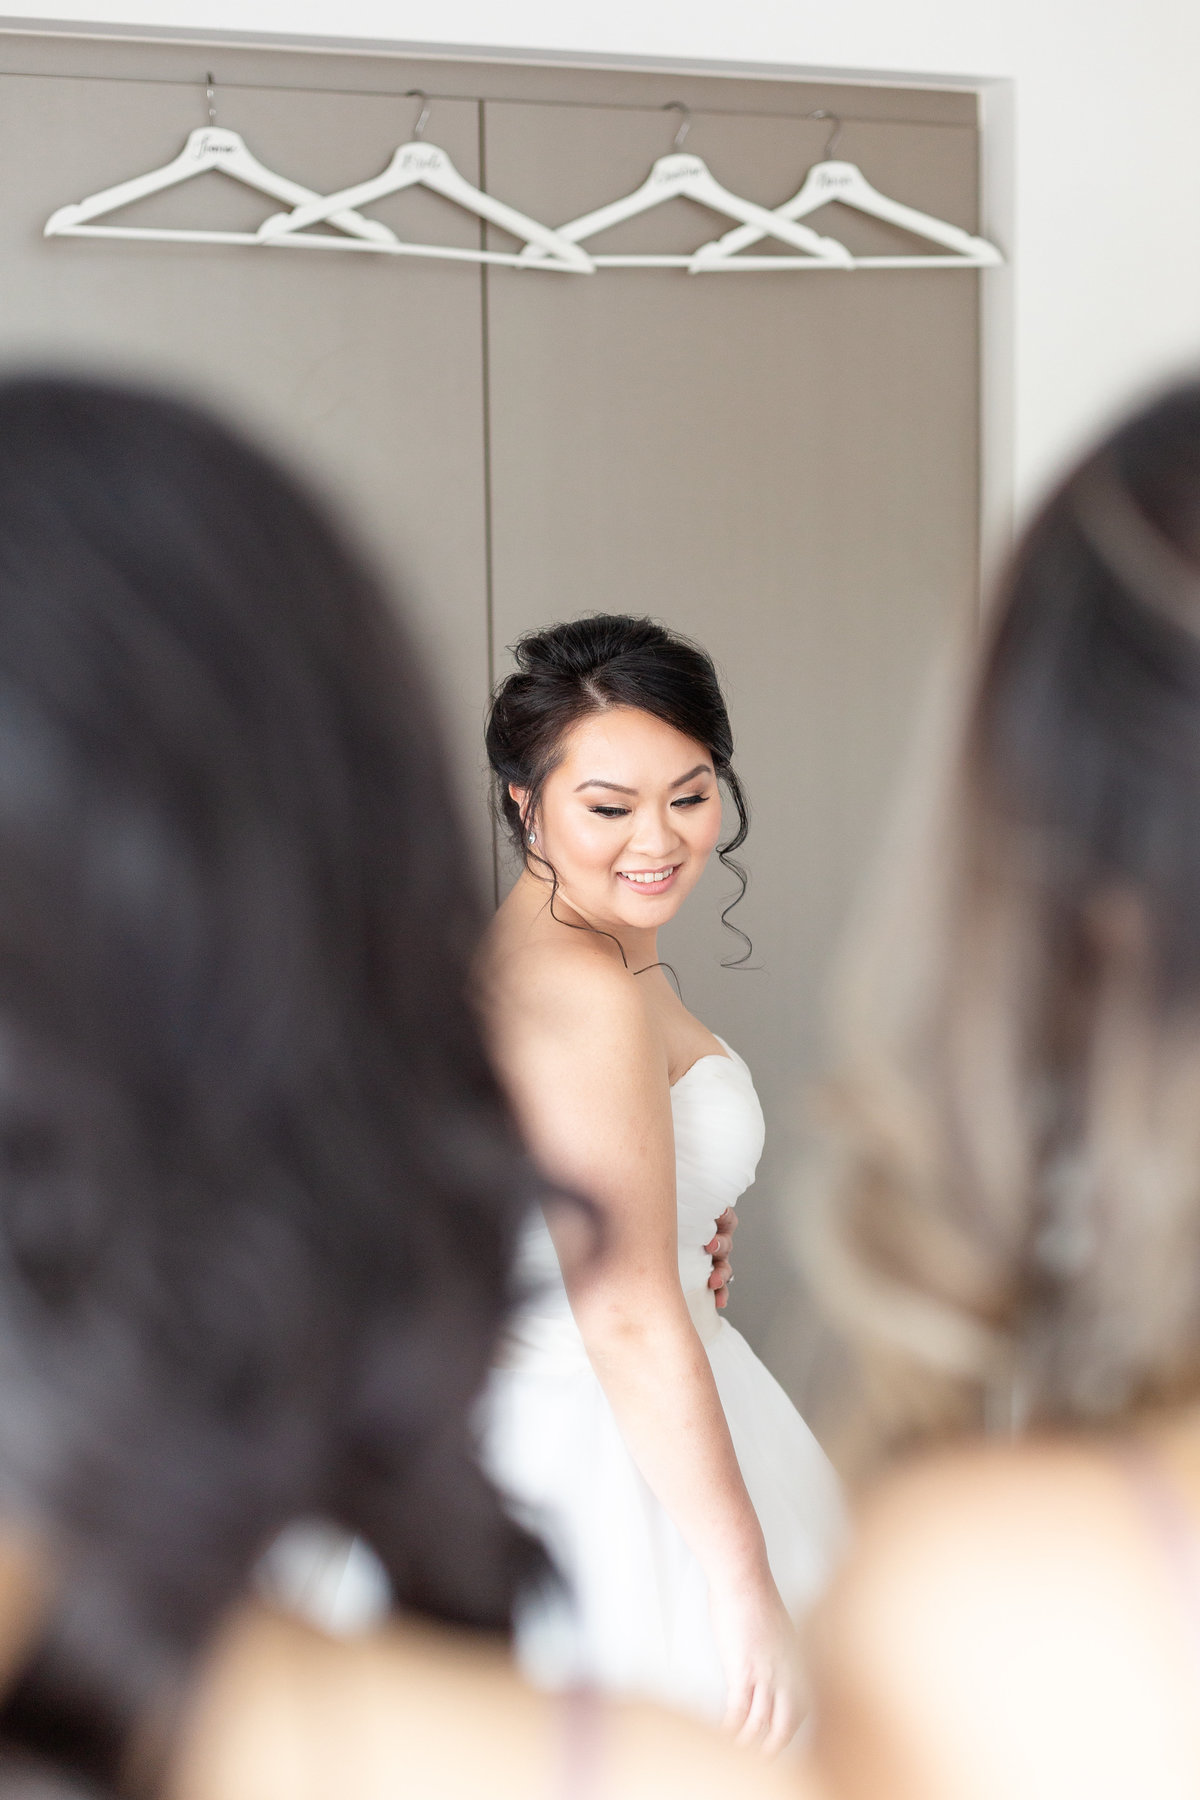 arlington-estae-Vicky-and-Emmanuel-Wedding-Bride-Getting-Ready-Chris-and-Micaela-Photography-85